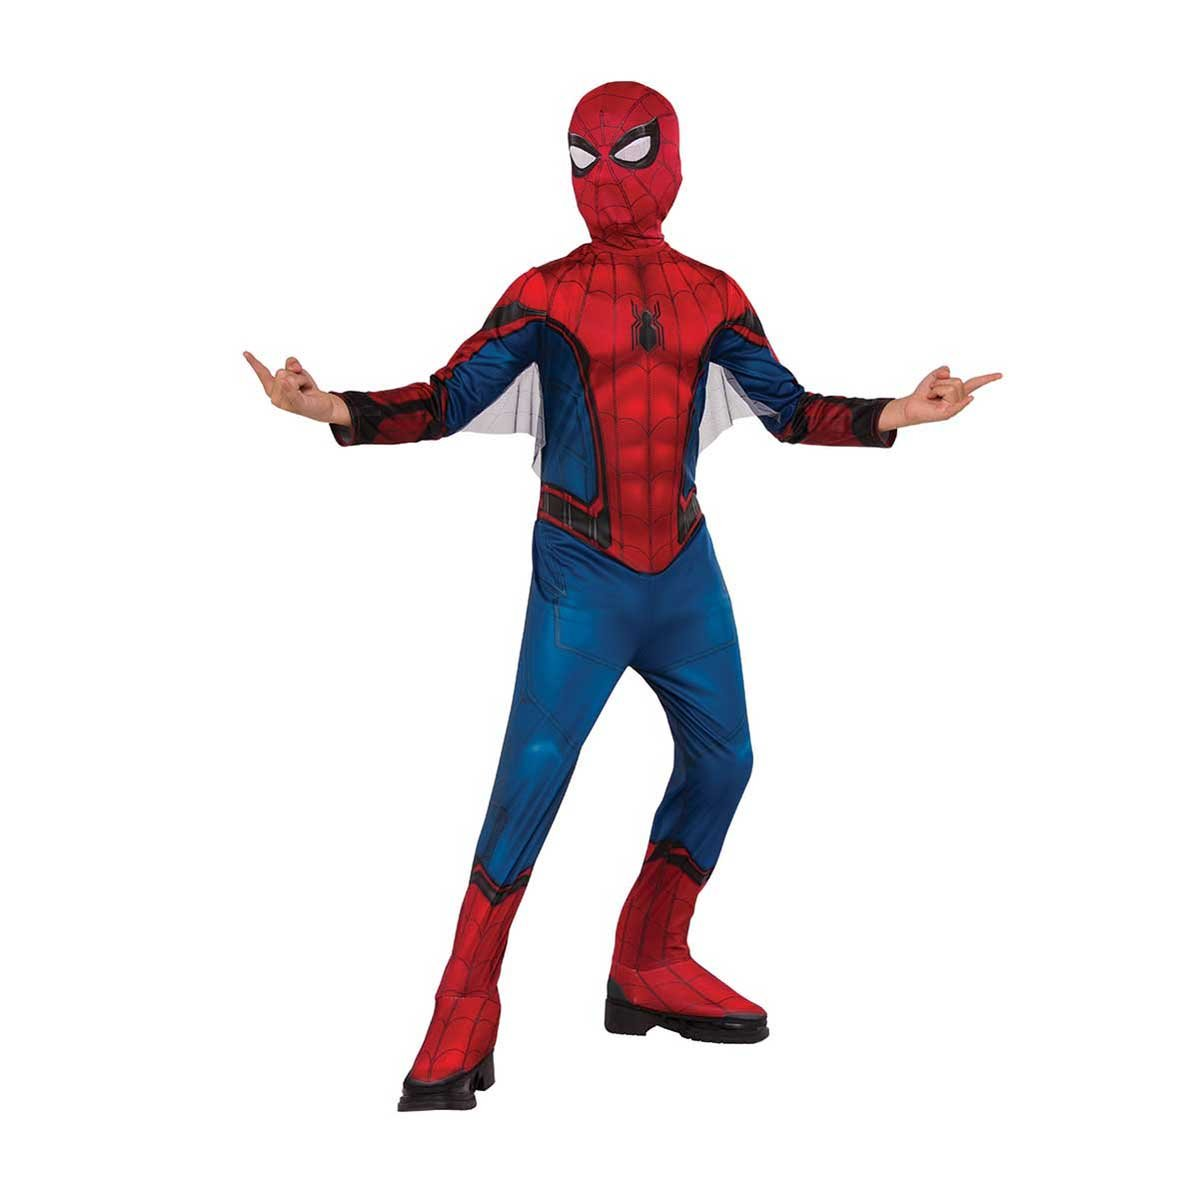 Rubie's Costume Spider-Man Homecoming Child's Costume, Small, Multicolor Rubie's Costume Co 630730_S